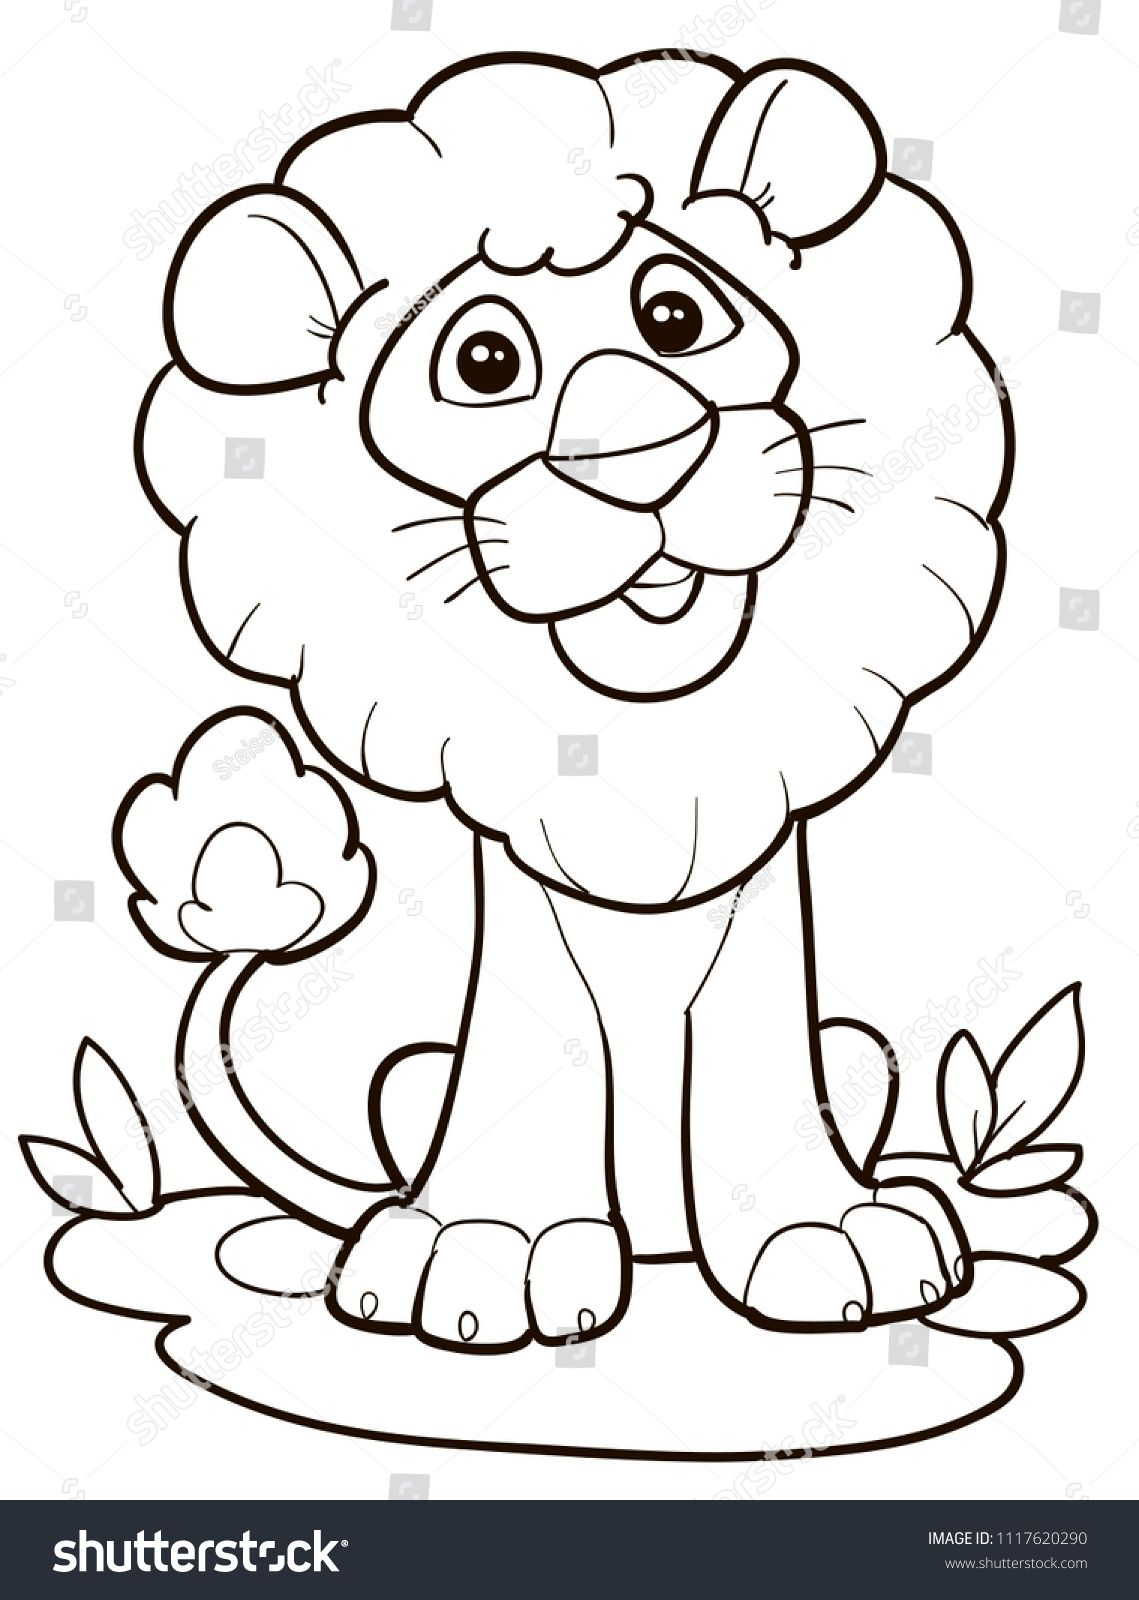 Coloring Page Outline Of Cartoon Cute Lion Vector Illustration Summer Coloring Book For Kids Lion Coloring Pages Animal Coloring Pages Puppy Coloring Pages Royalty free clipart illustration of an outlined cute sea lion. cartoon cute lion vector illustration